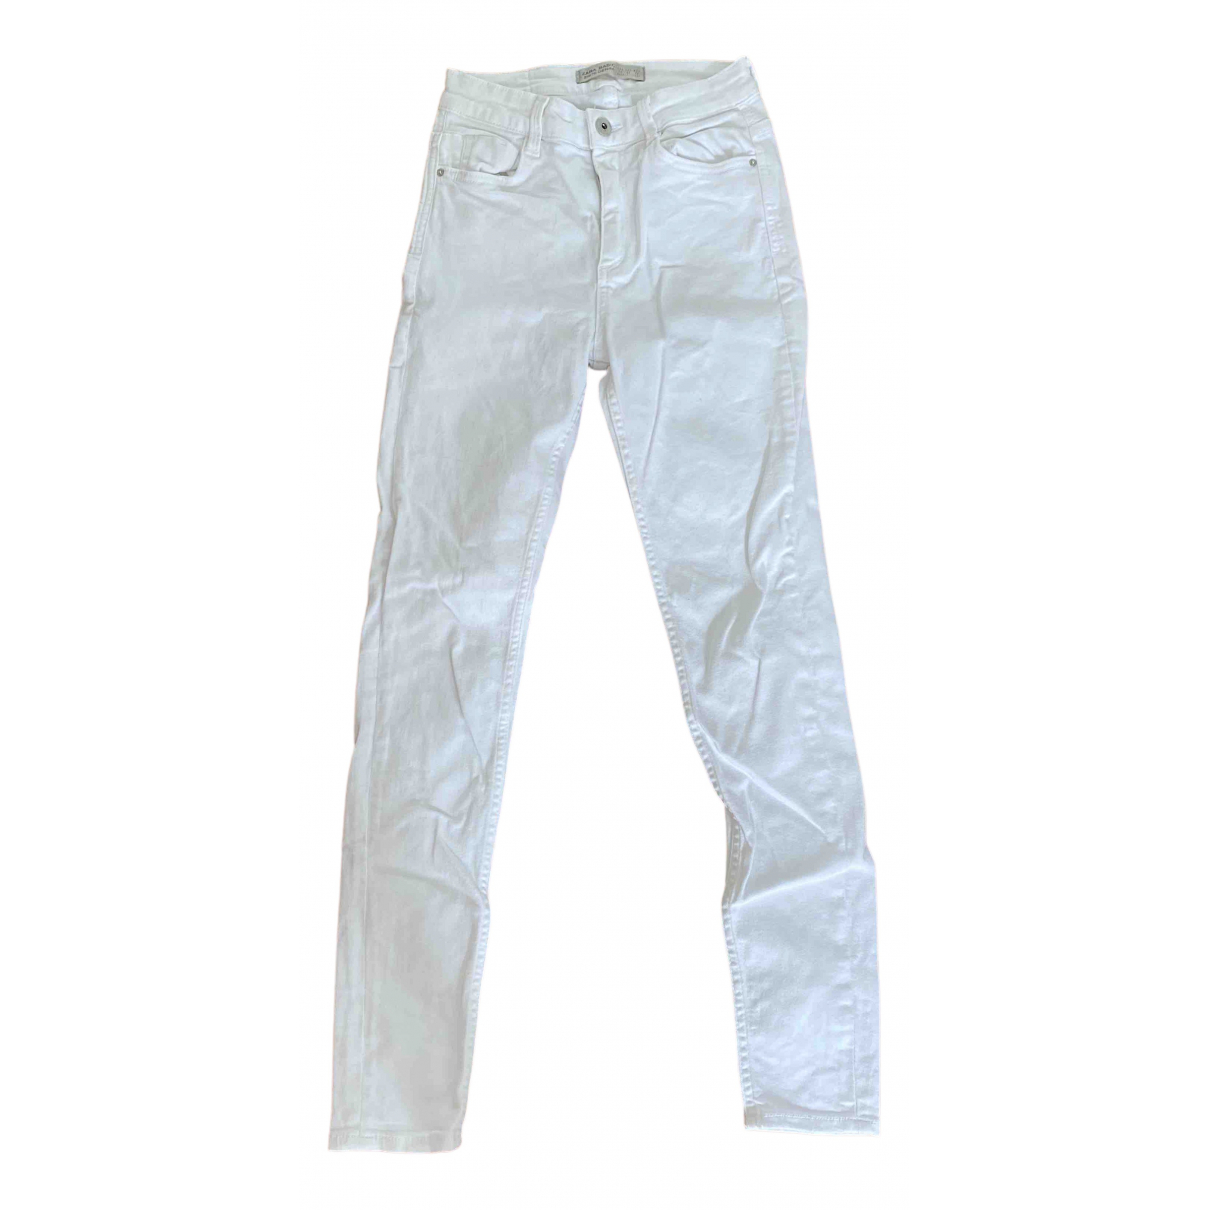 Zara \N White Cotton - elasthane Jeans for Women 34 FR